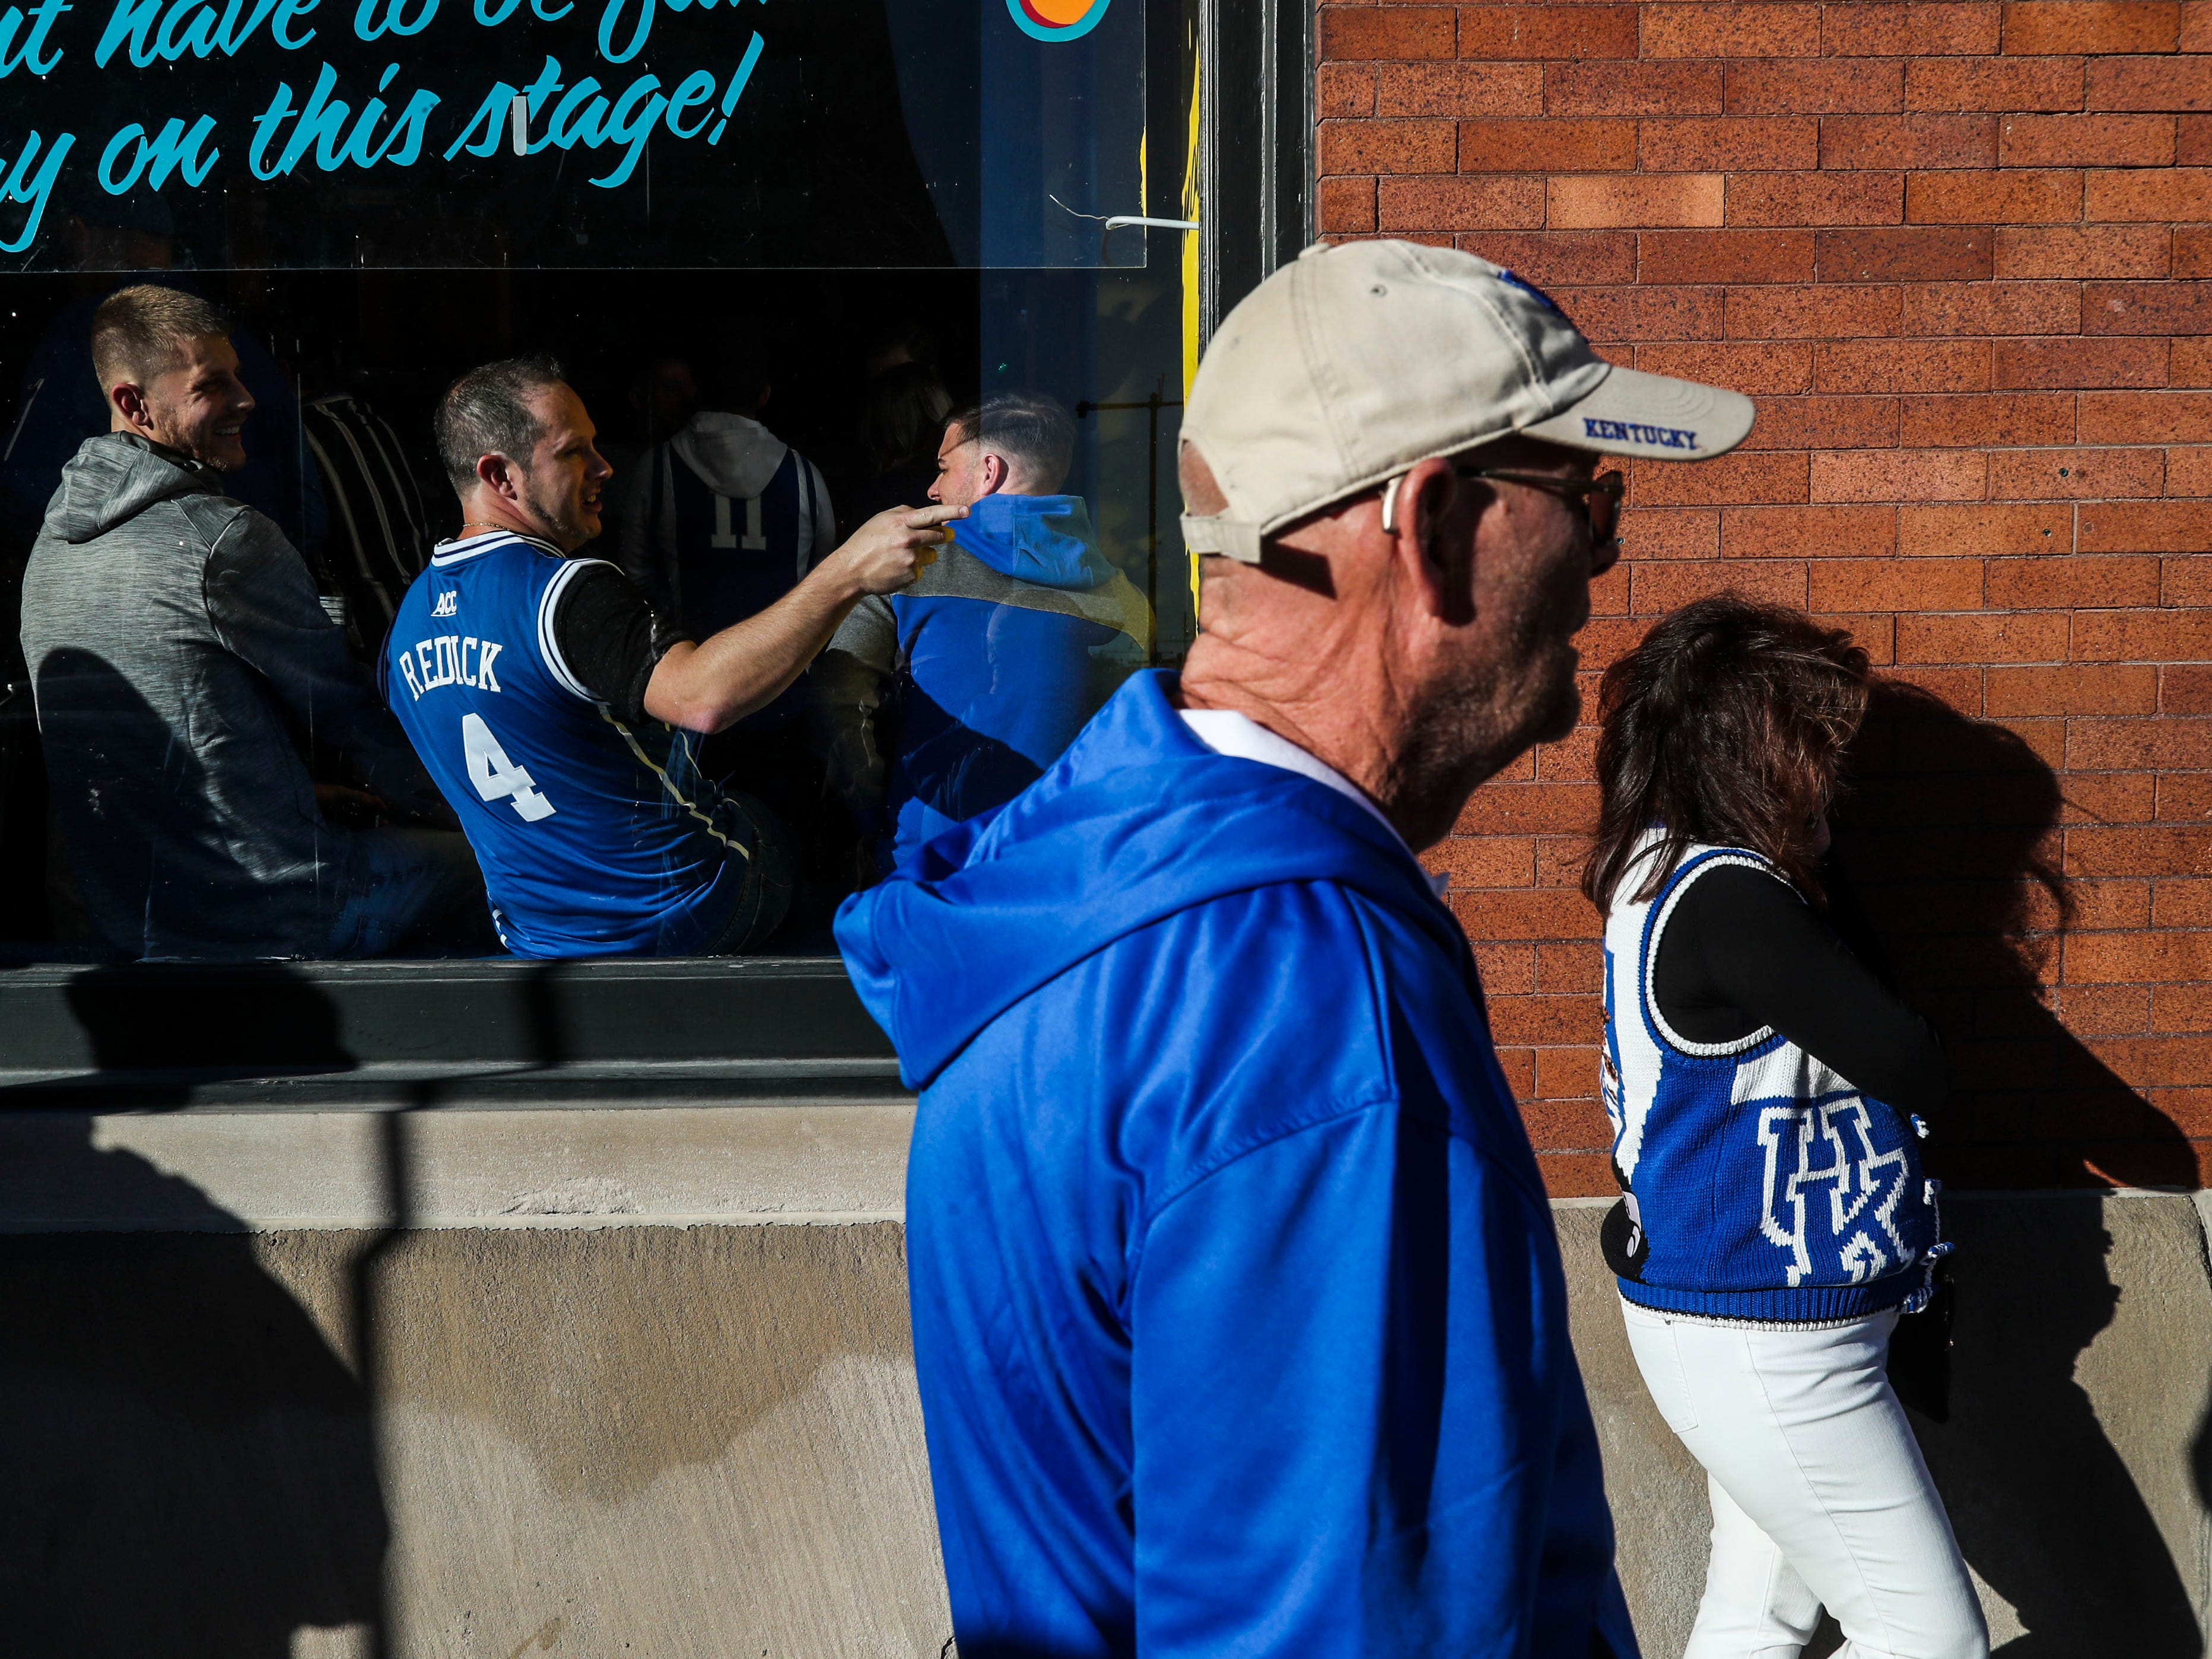 Kentucky fans wait outside a bar before the Champions Classic Tuesday night in Indianapolis.